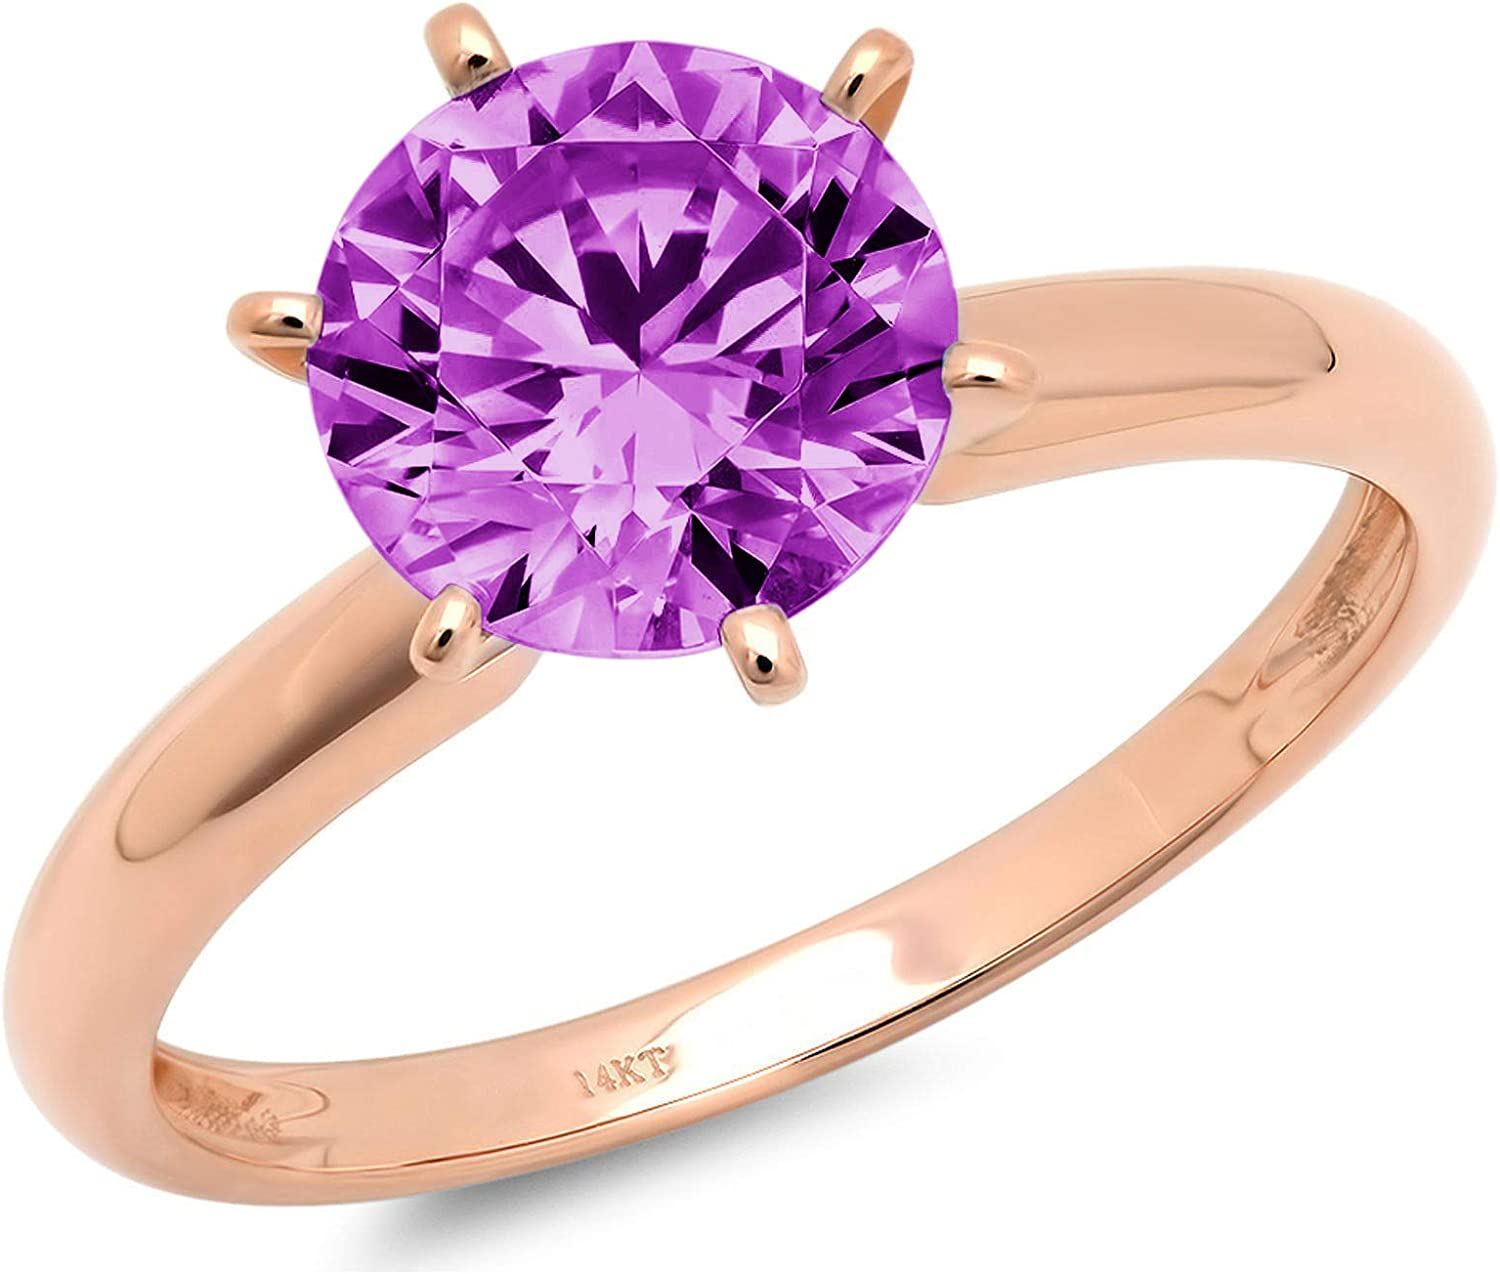 0.55 ct Brilliant Round Cut Solitaire Flawless Genuine Simulated Purple Alexandrite CZ 6-Prong Stunning Classic Statement Designer Ring in Solid 14k rose Gold for Women